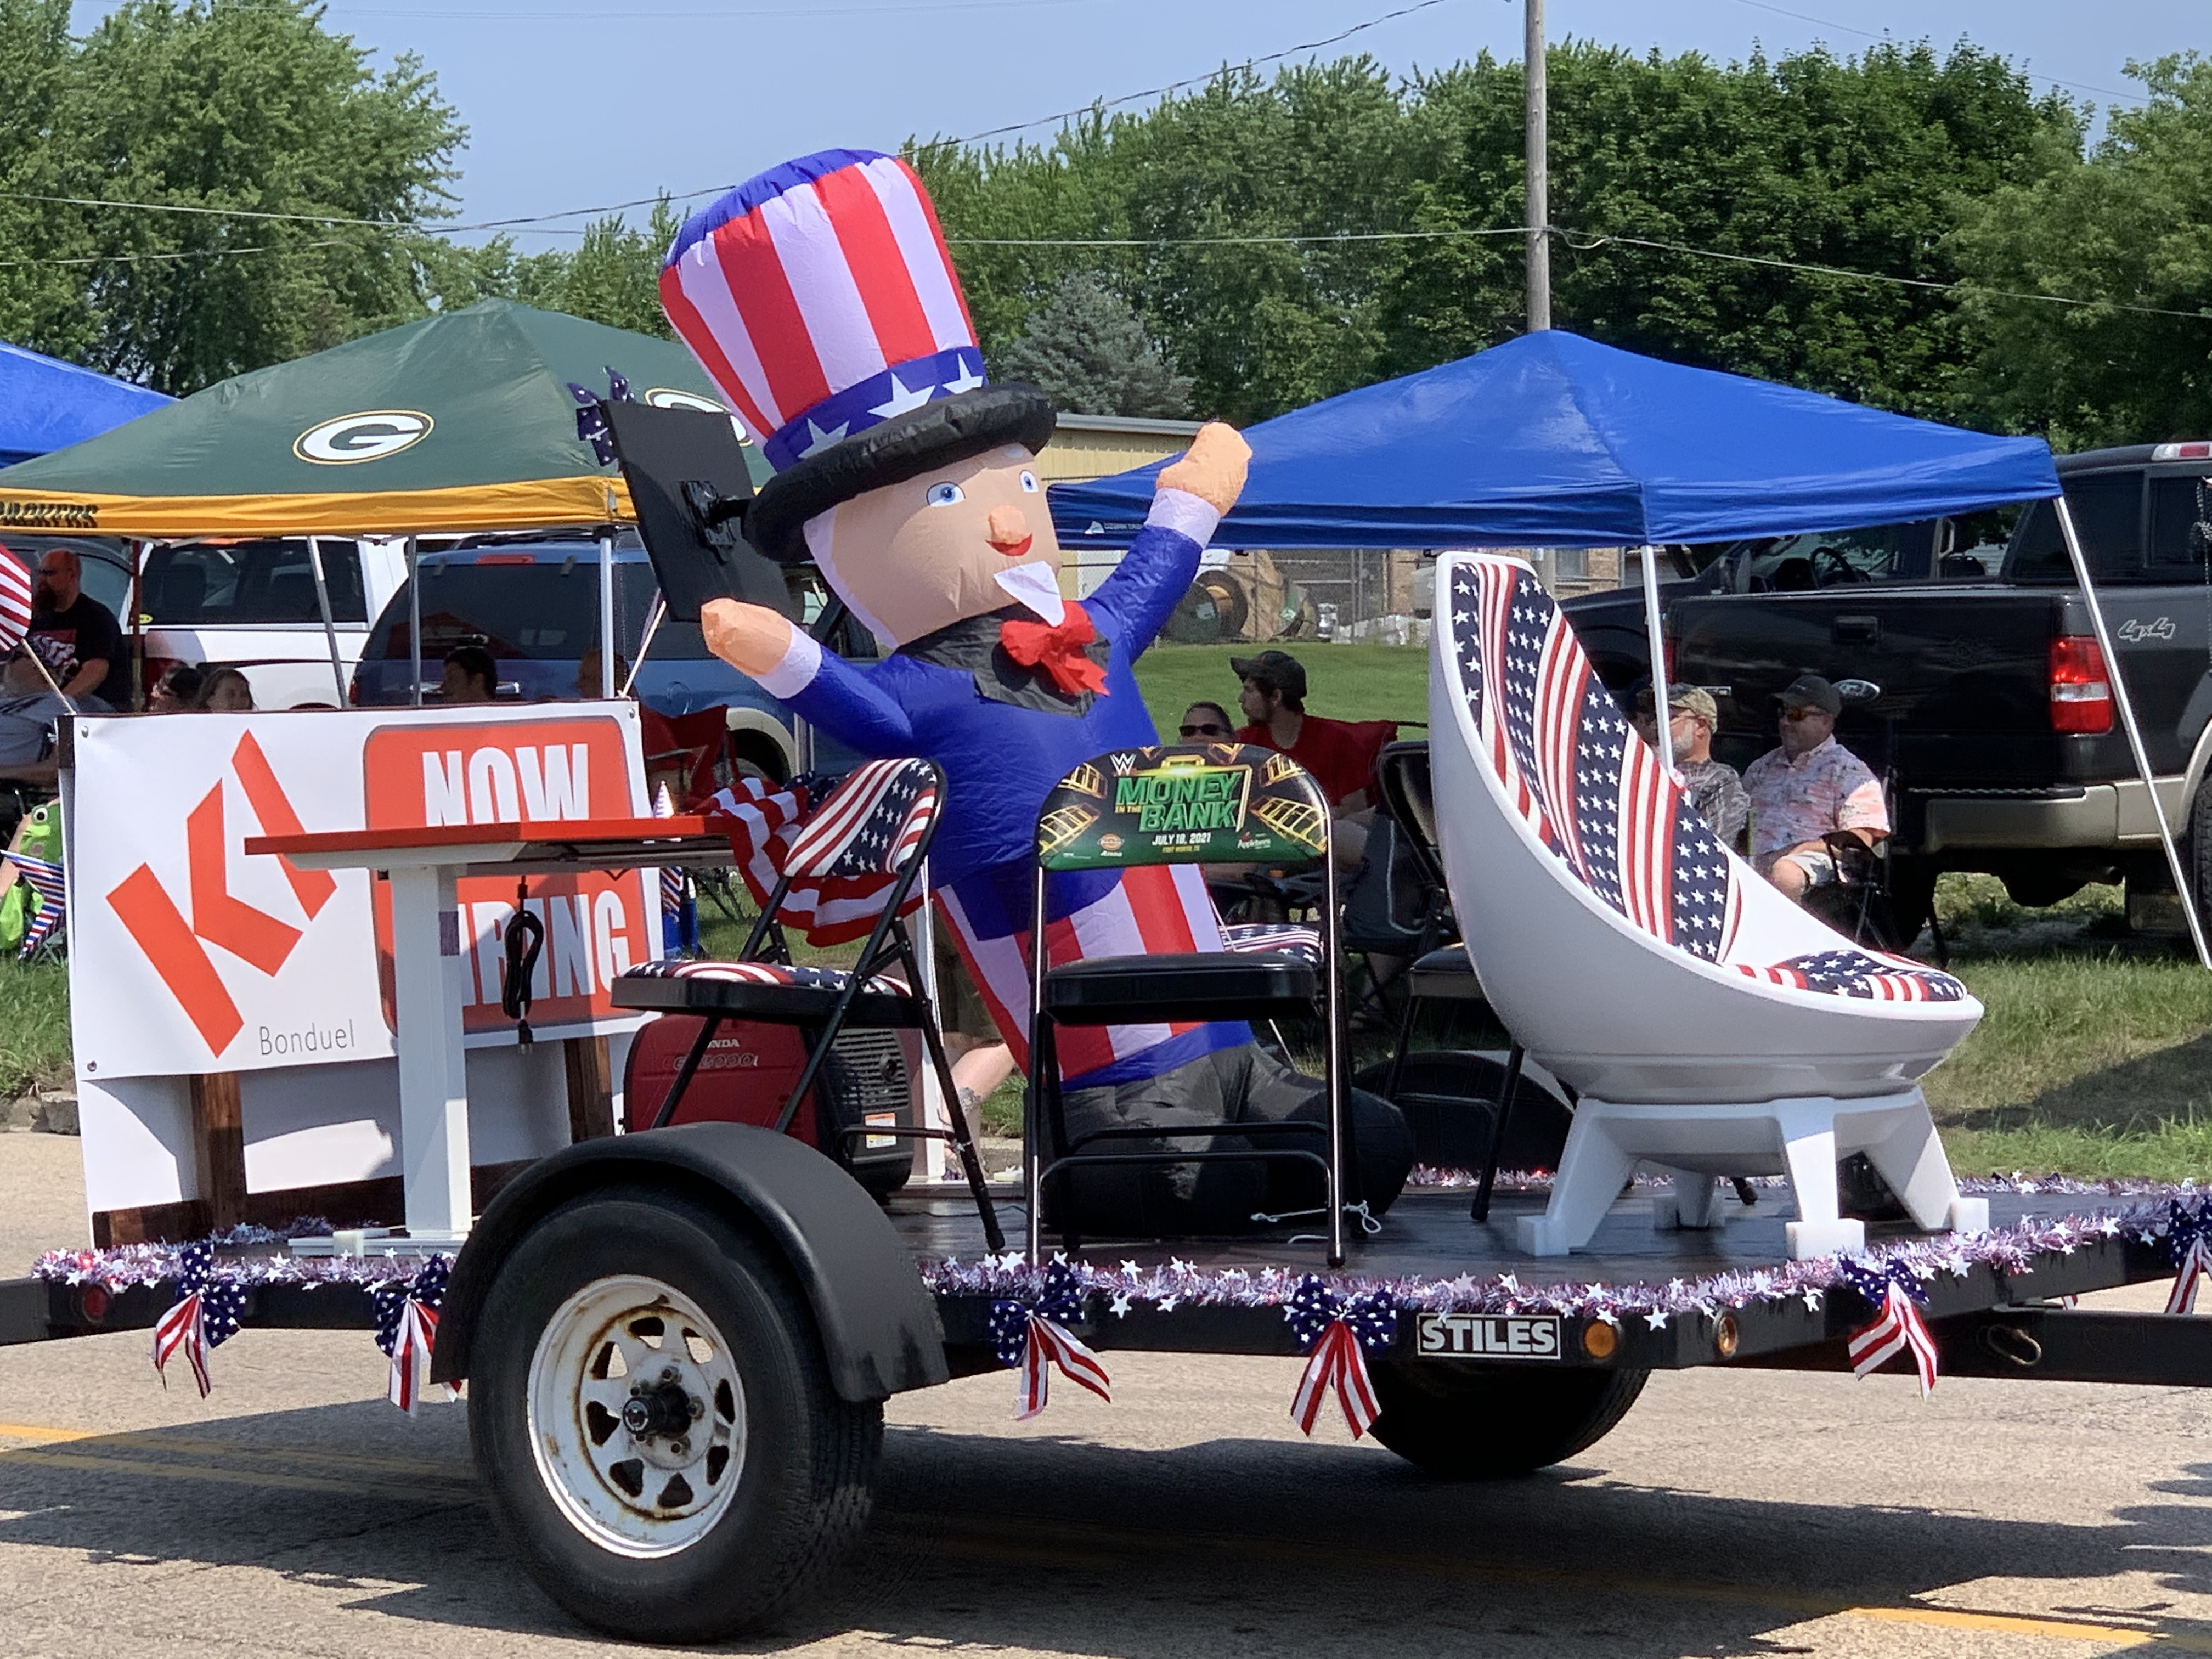 An inflatable Uncle Sam was one of the spectacles of the parade in Bonduel as it passed down Green Bay Street on July 4.Luke Reimer | NEW Media